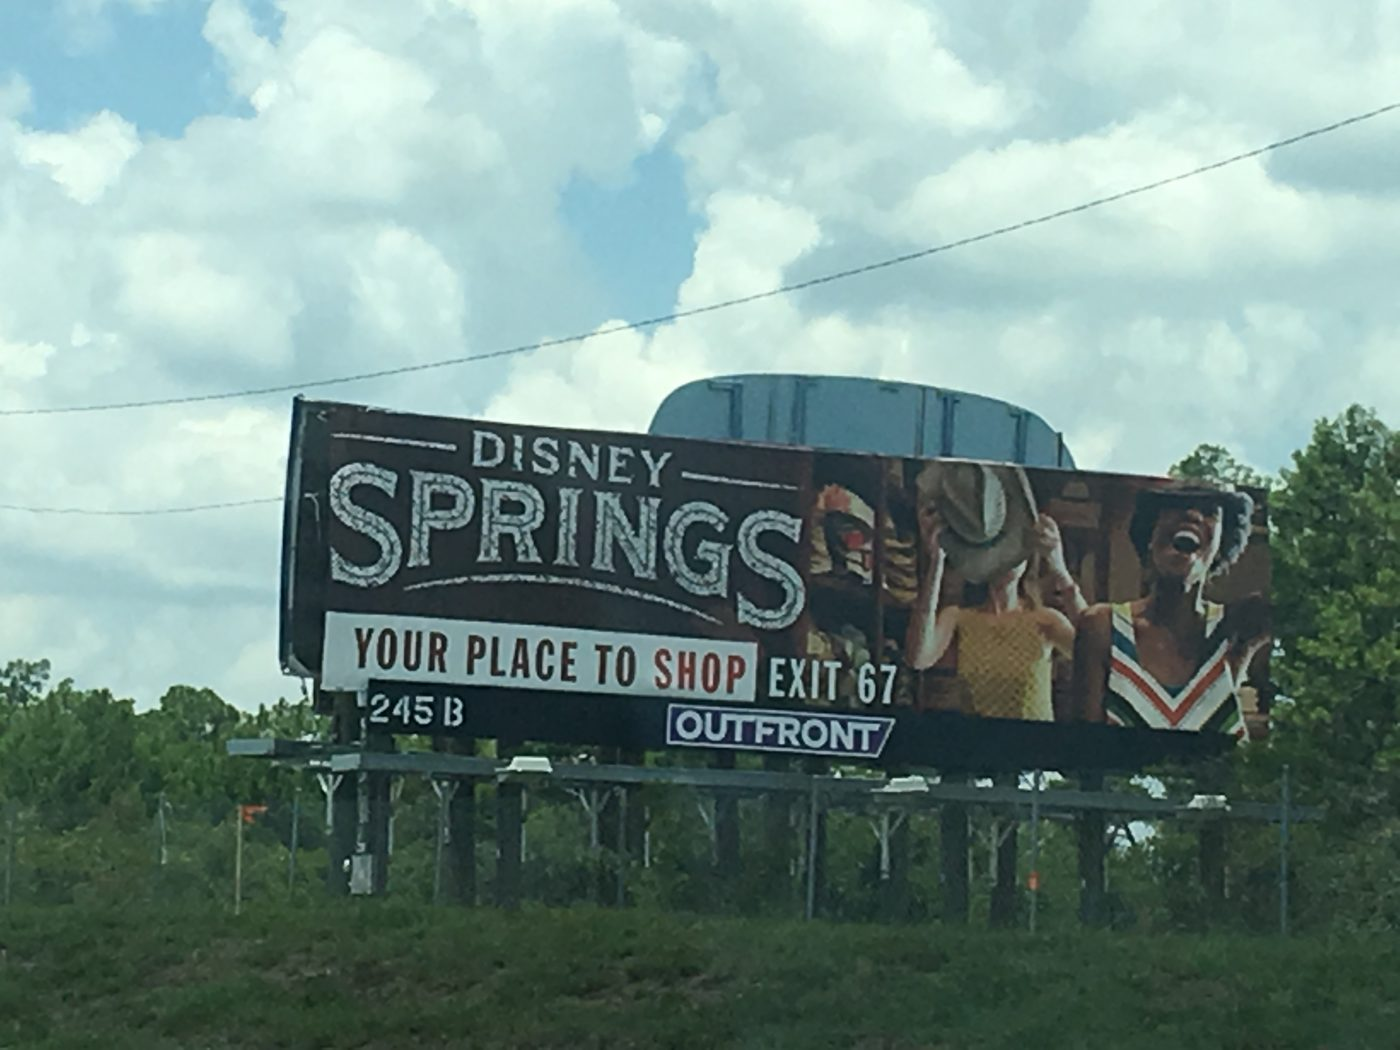 Disney Springs sign (credit: Windermere Sun-Susan Sun Nunamaker)